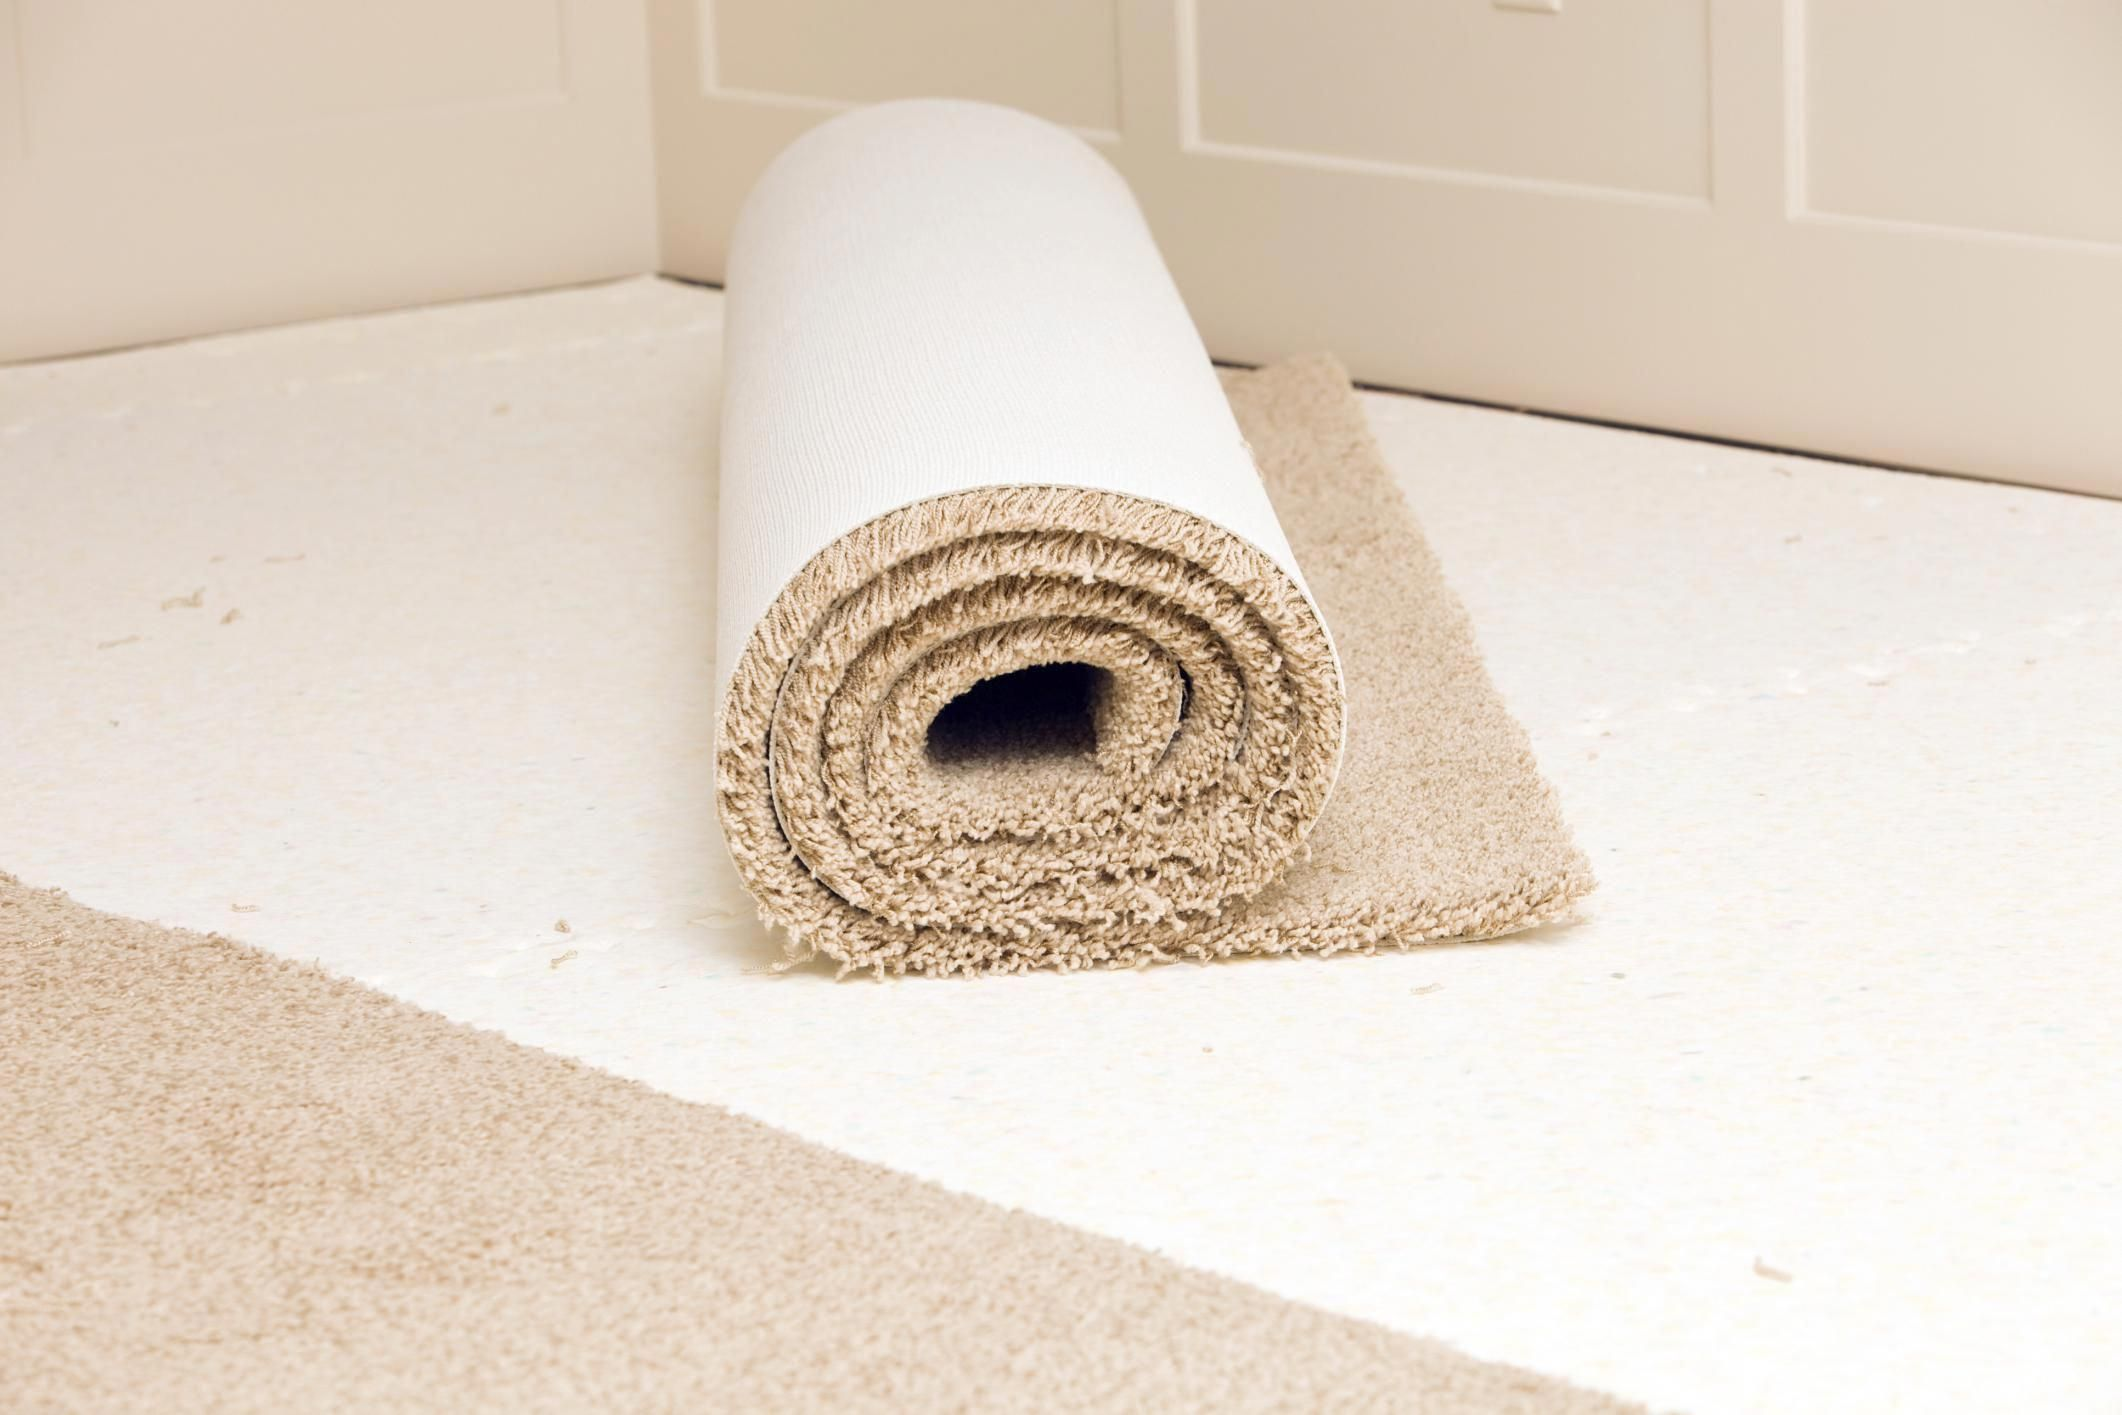 Carpet Runners For Stairs Lowes CarpetRunnersWithLogos